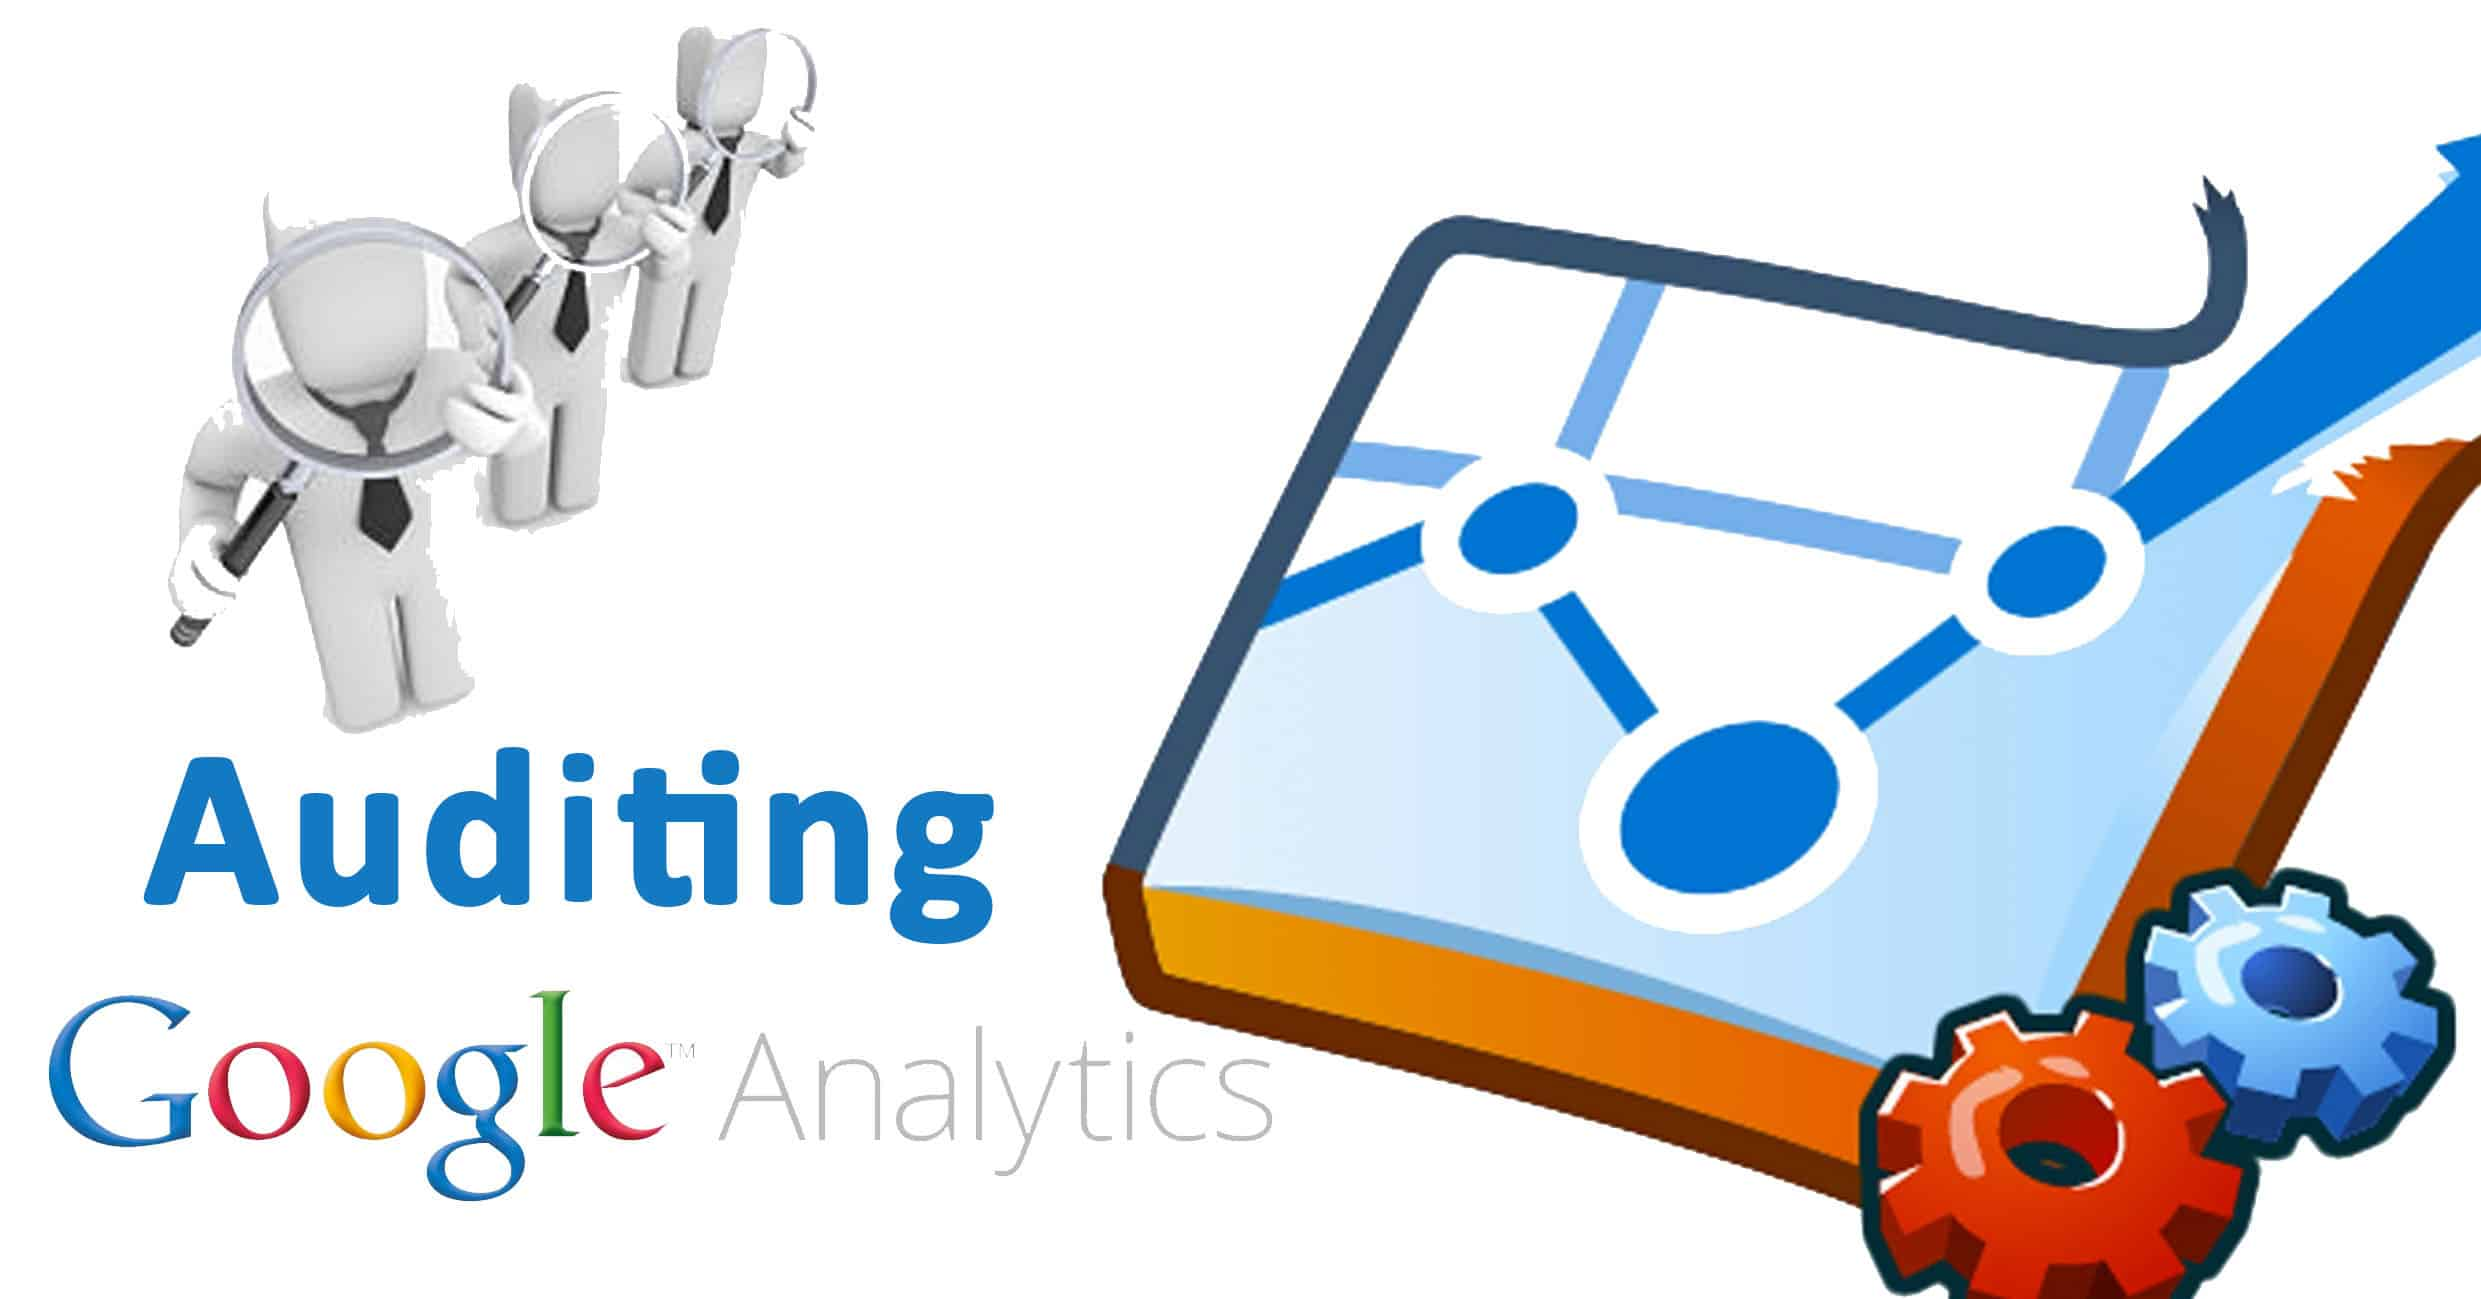 Auditing Google Analytics